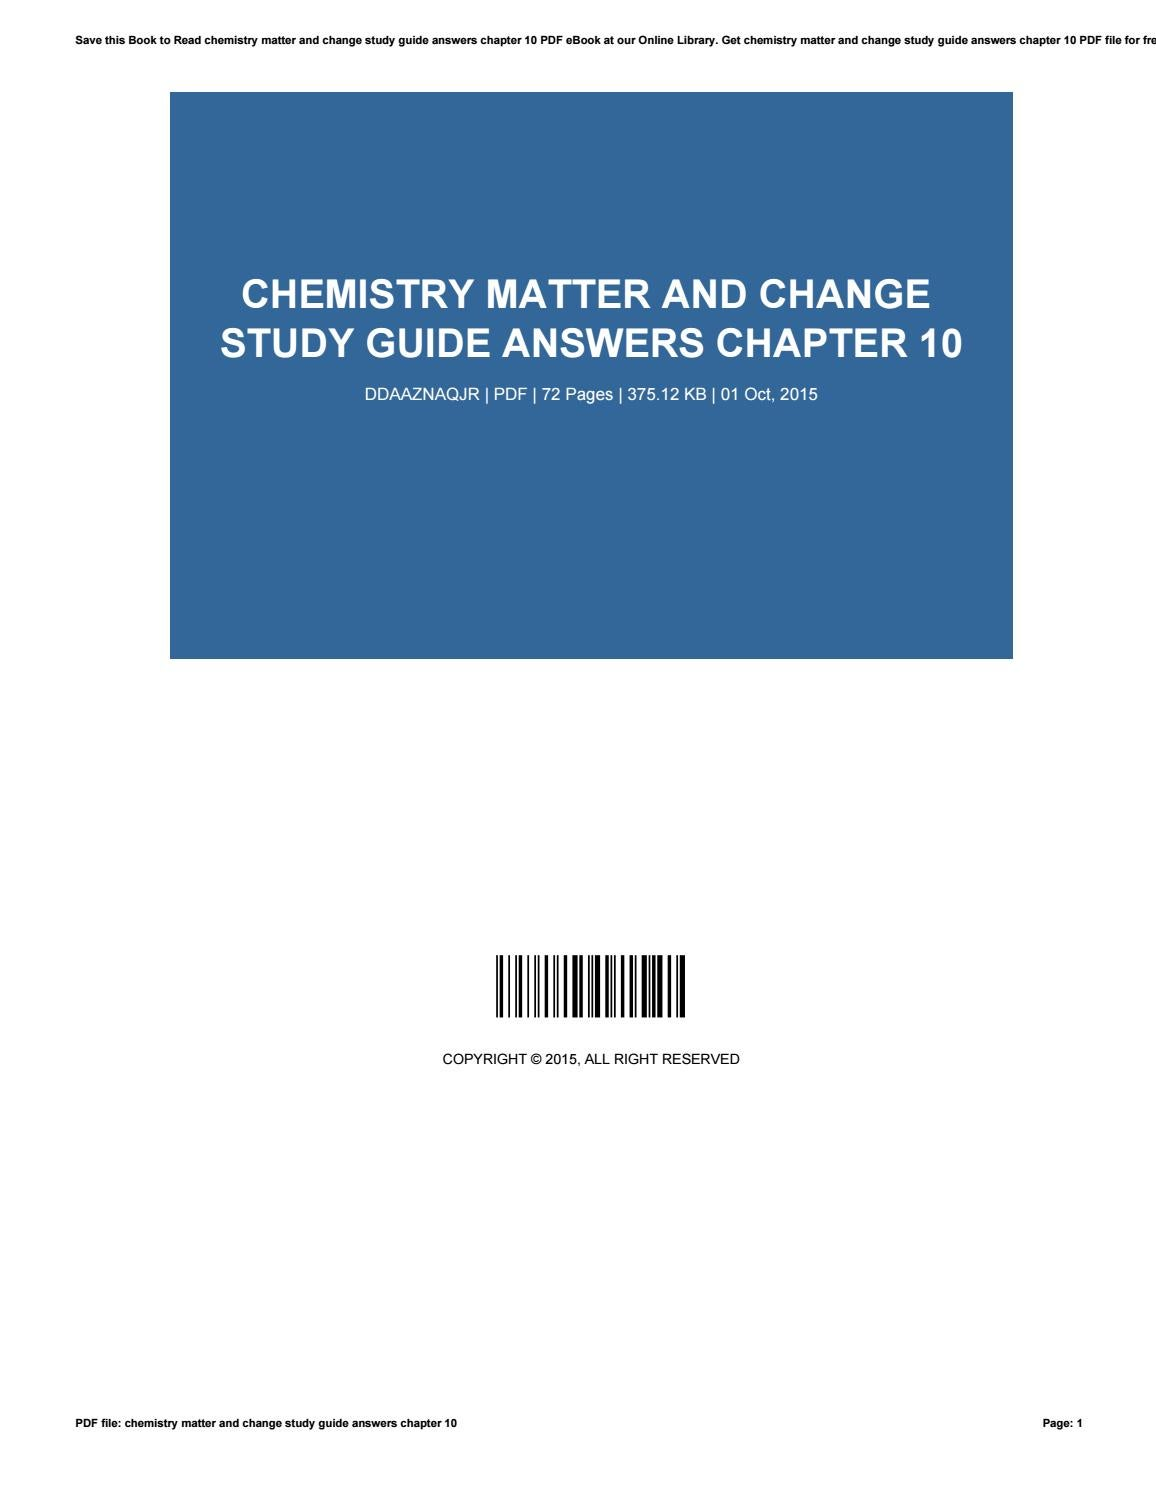 Chemistry matter and change study guide answers chapter 10 by Hazel - issuu